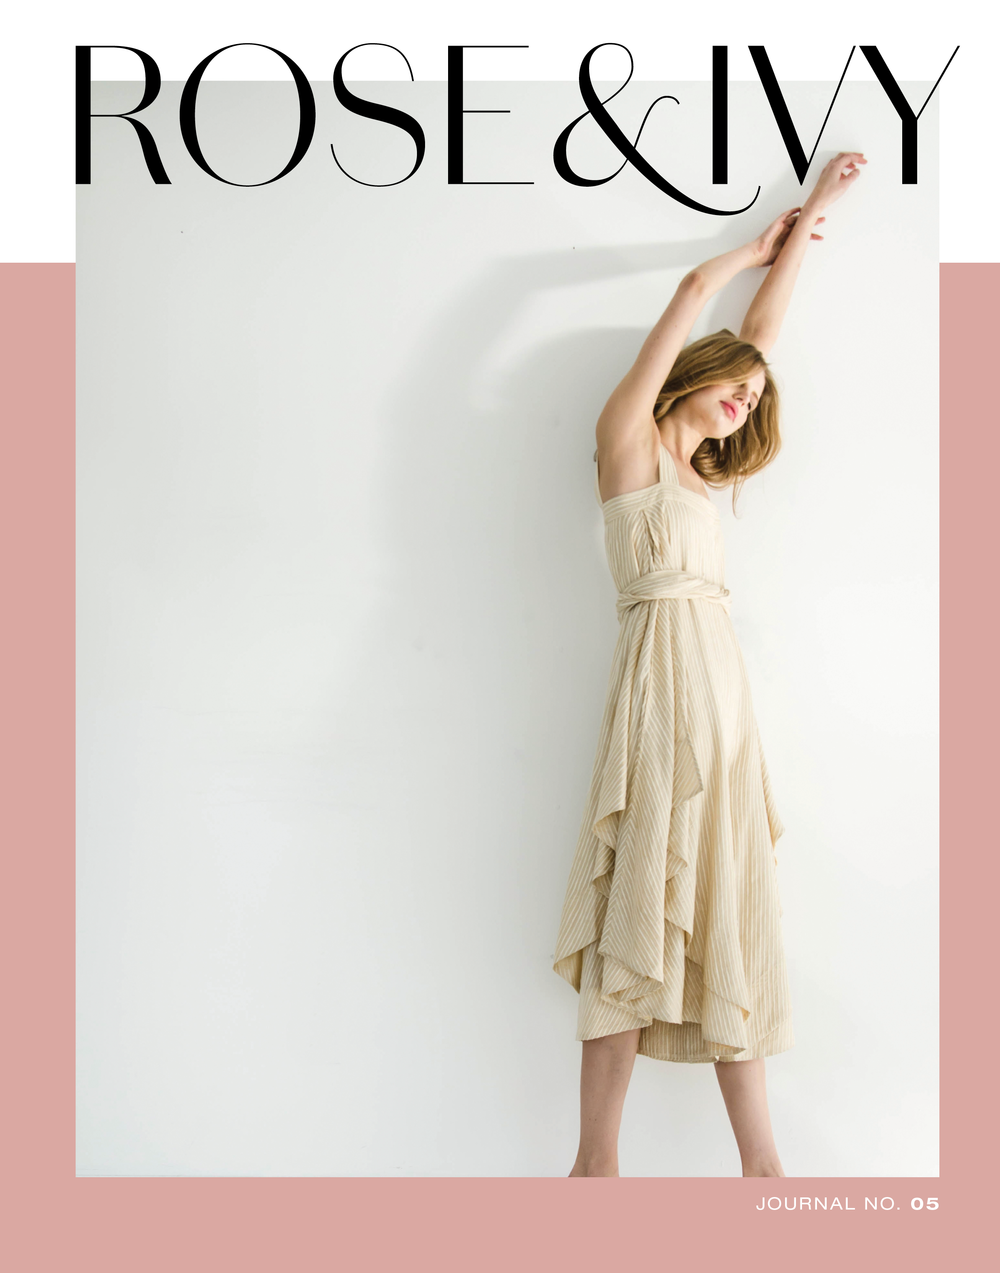 ROSE & IVY Journal Issue No. 05